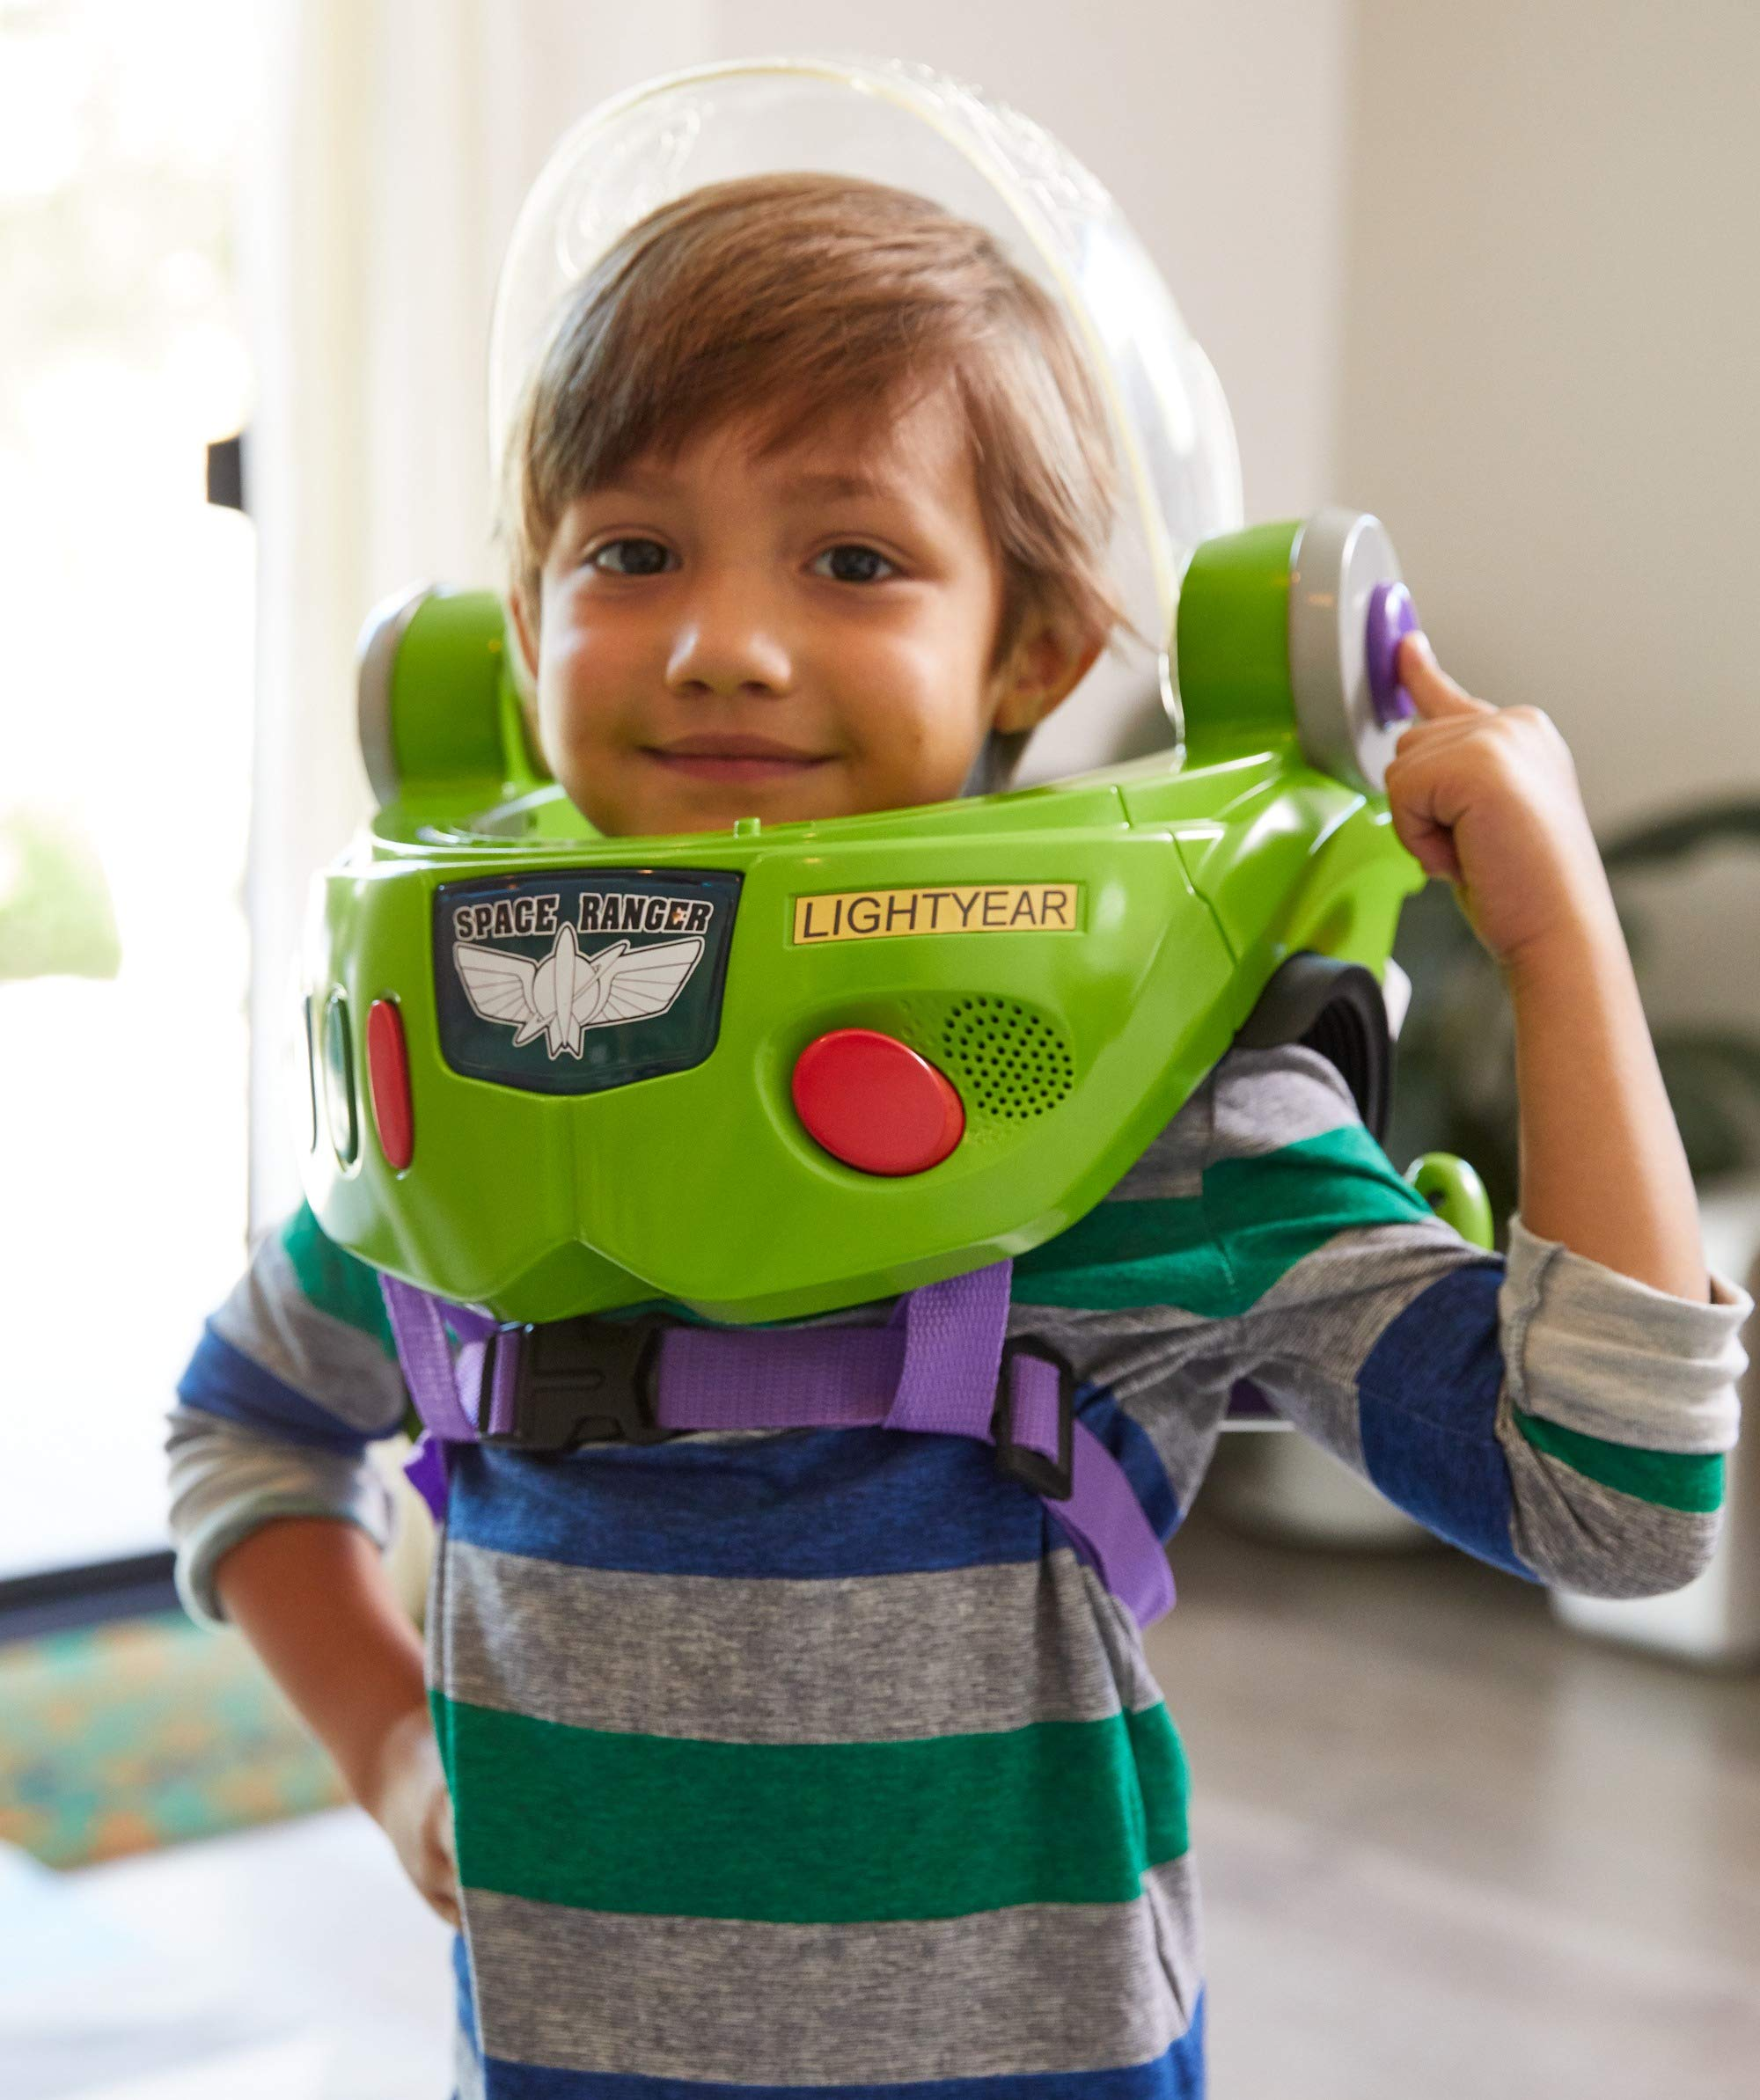 Toy Story Disney Pixar 4 Buzz Lightyear Space Ranger Armor with Jet Pack by Toy Story (Image #11)